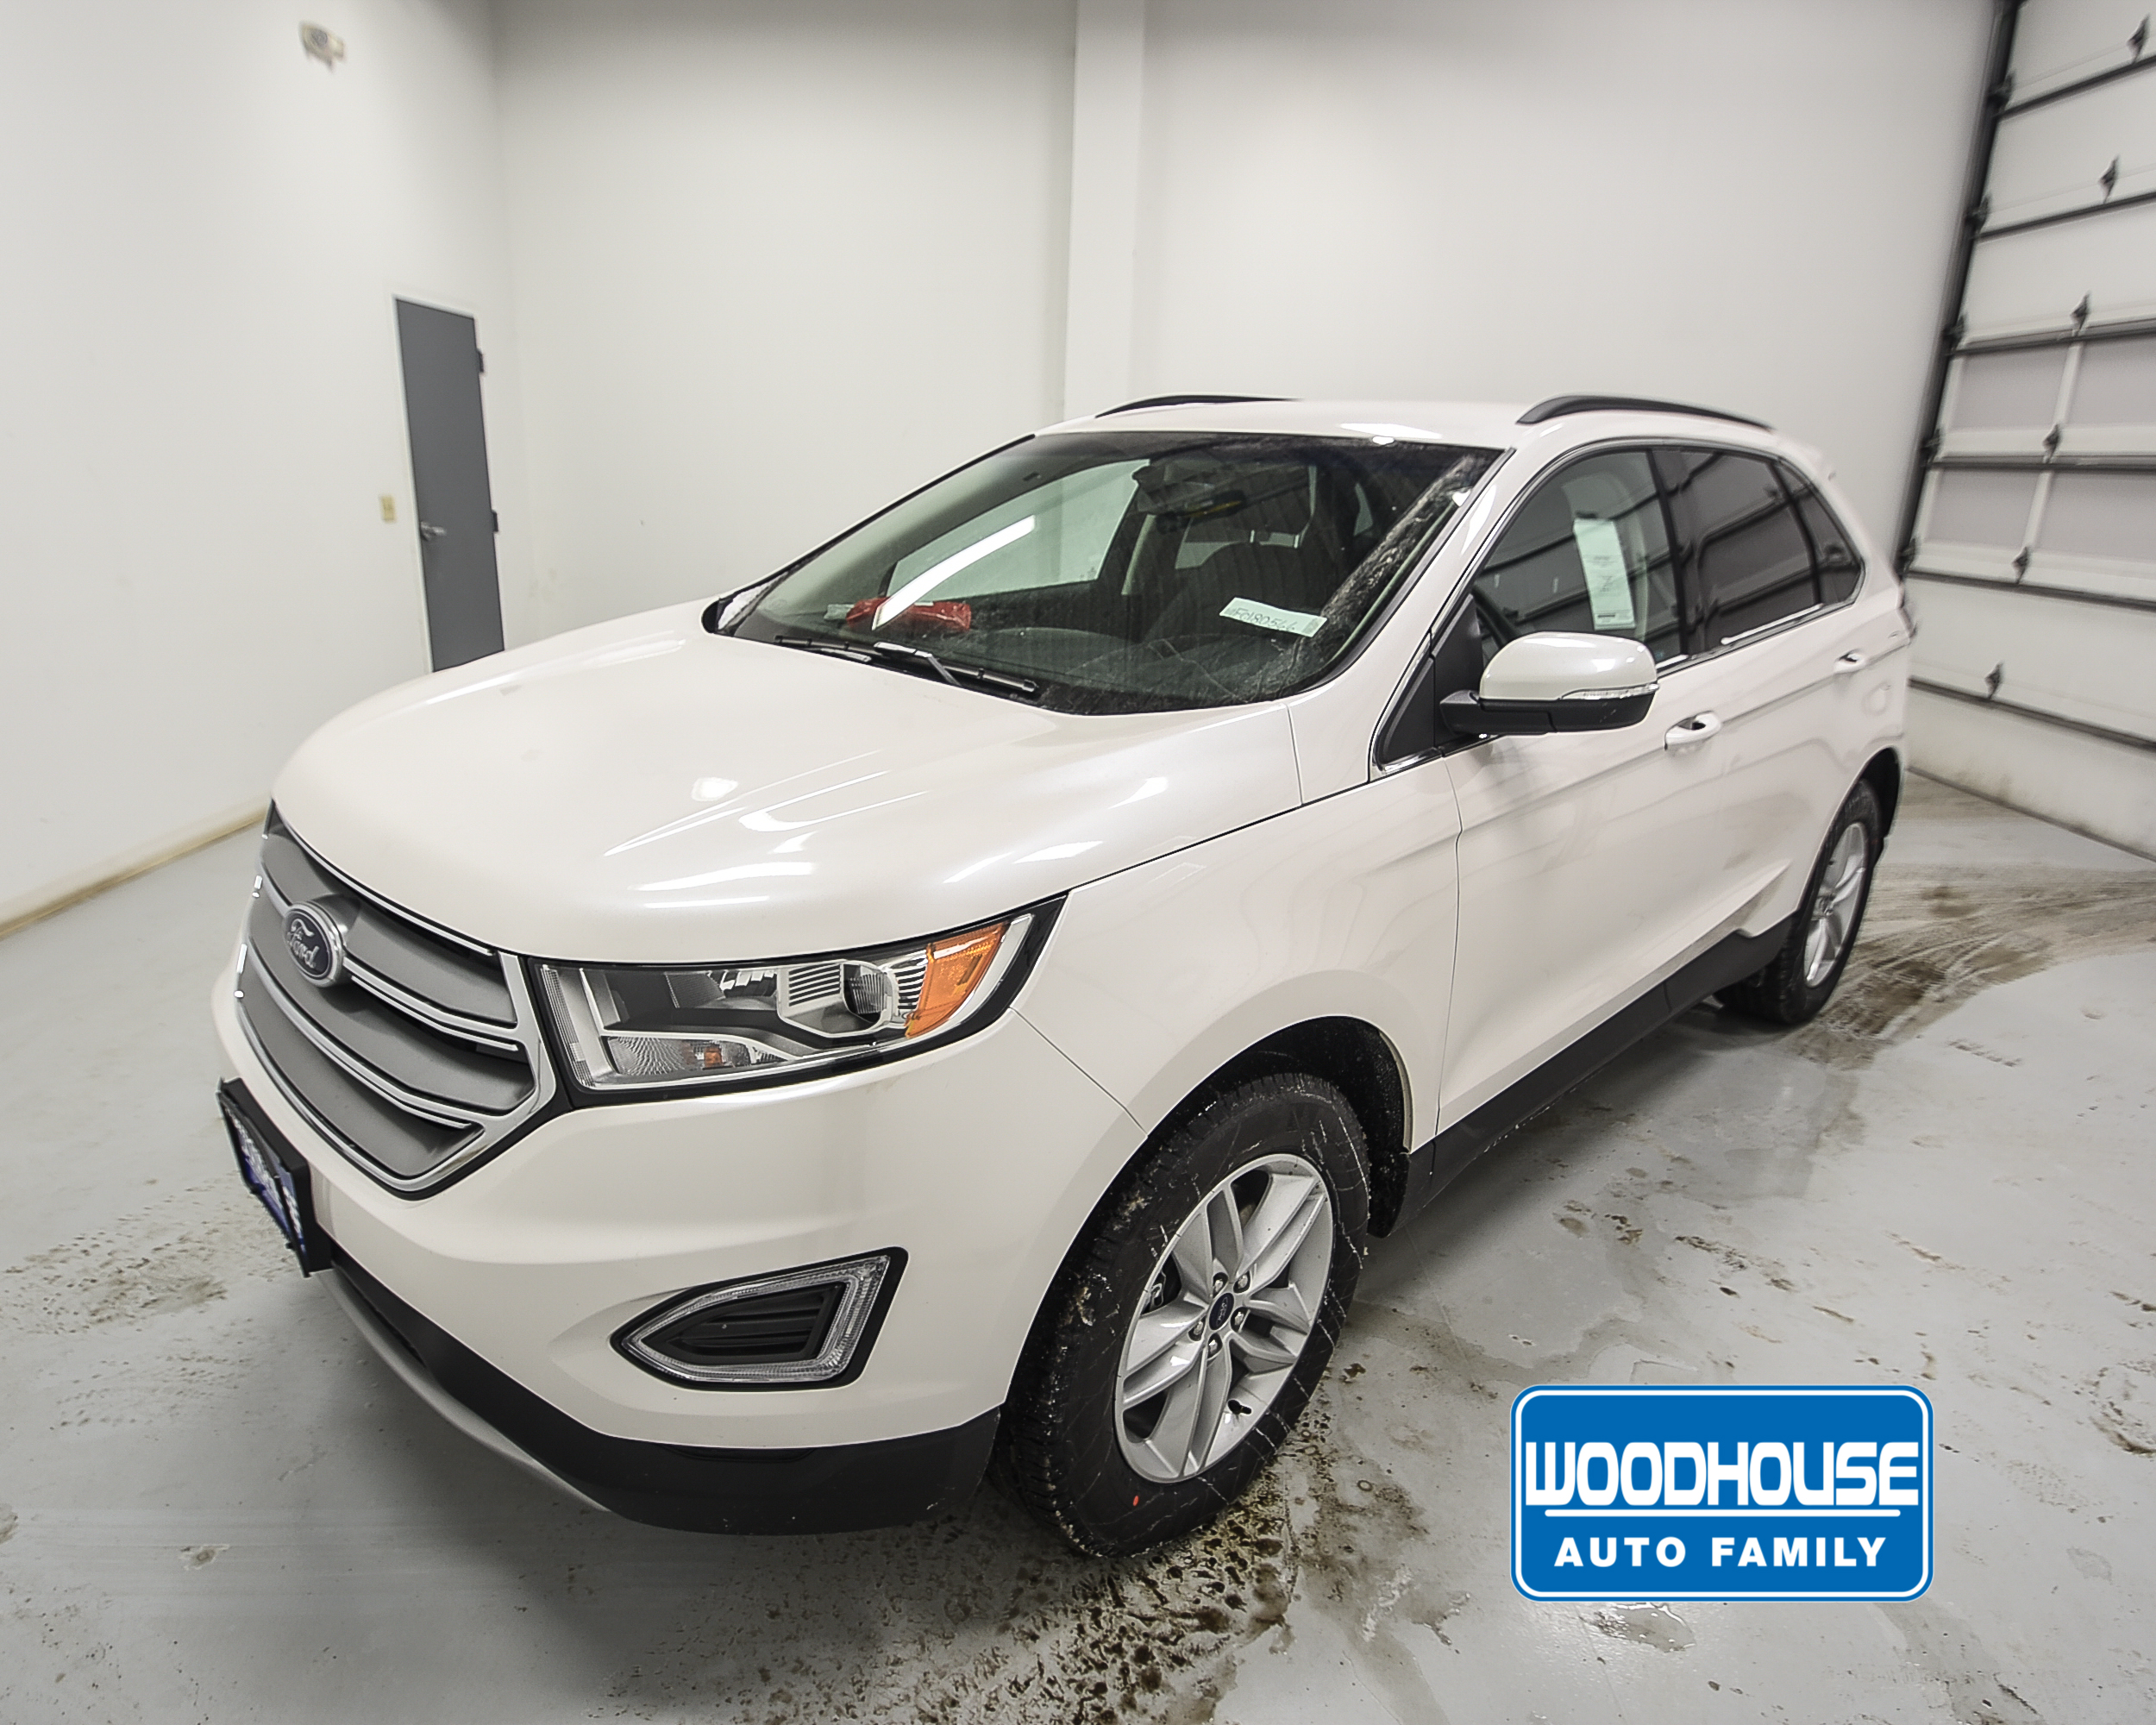 Ford Edge For Sale Woodhouse Auto